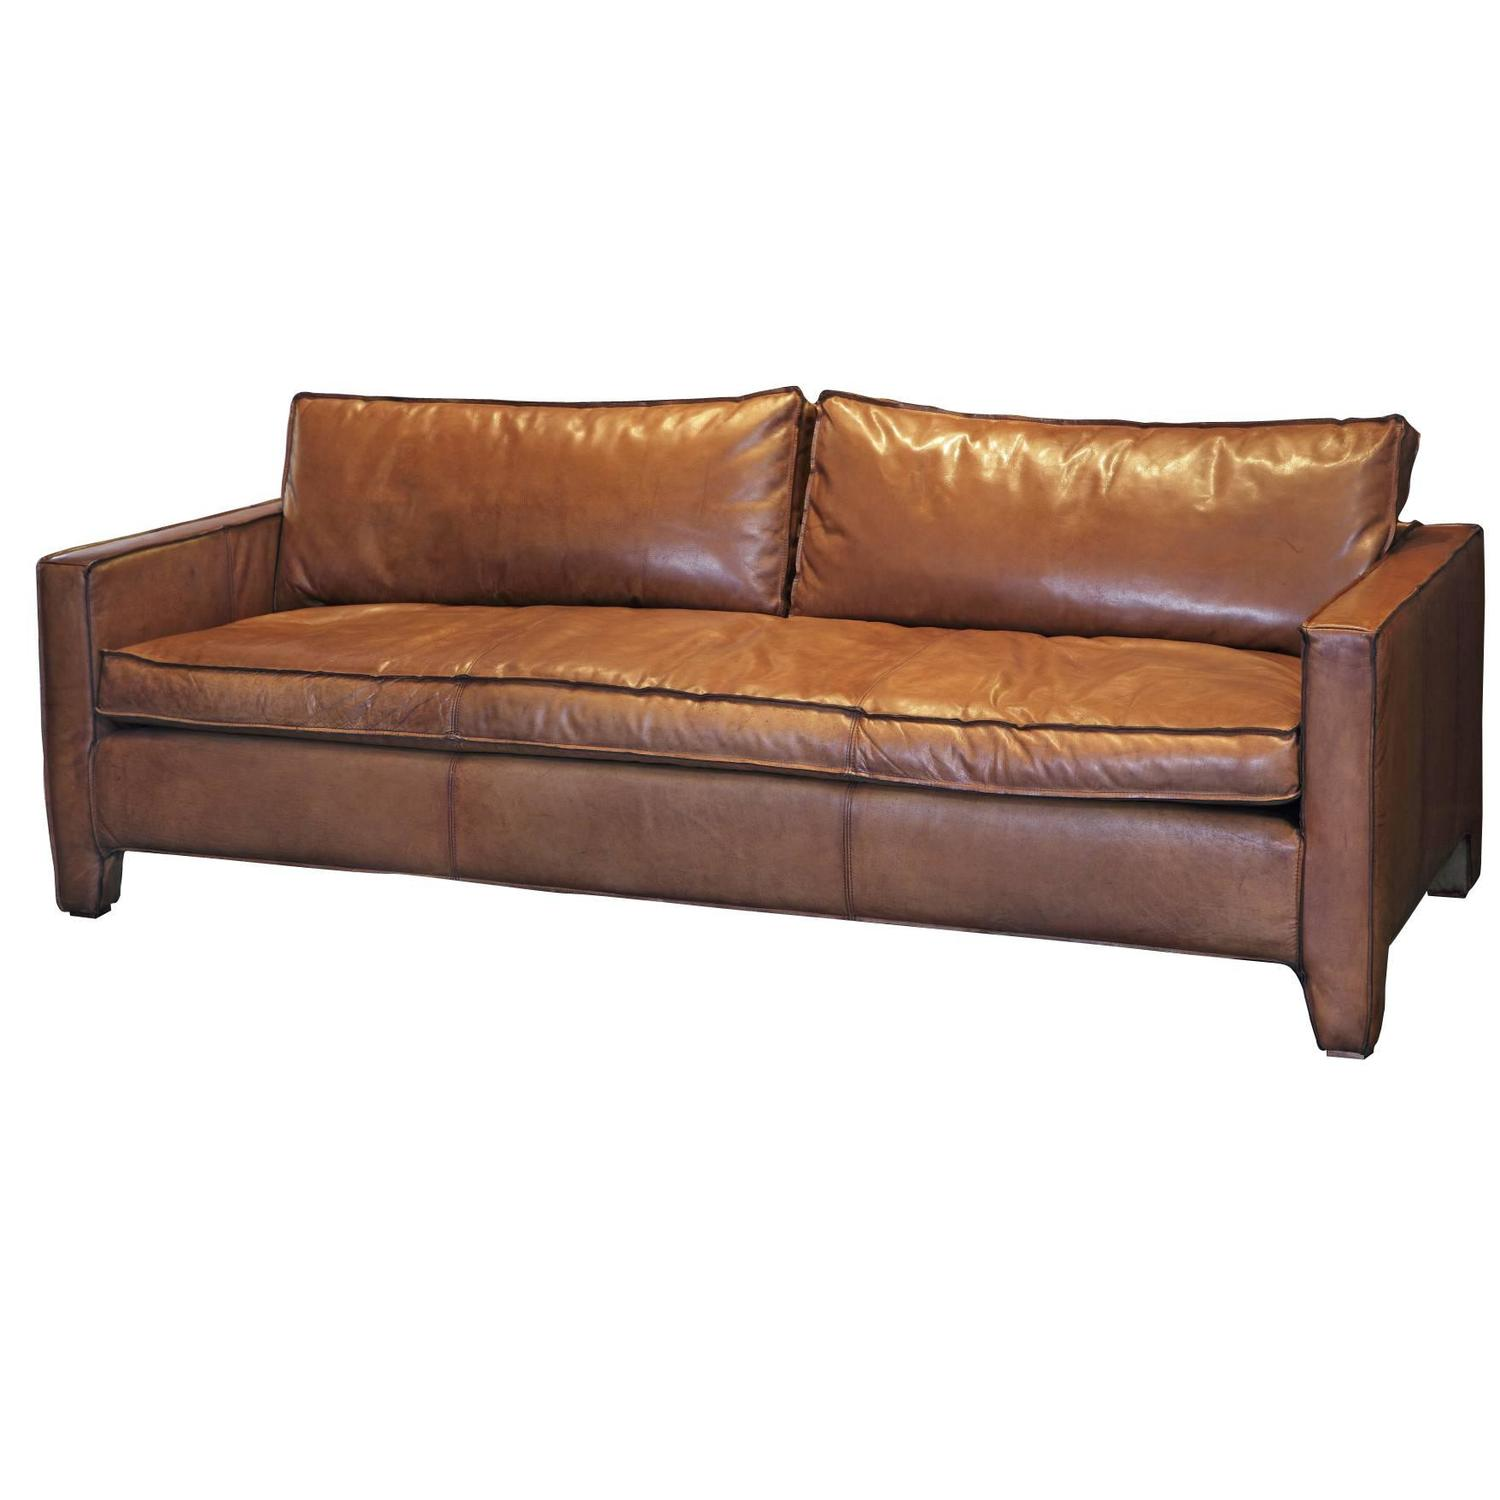 saddle soap leather sofa children s furniture couch brown